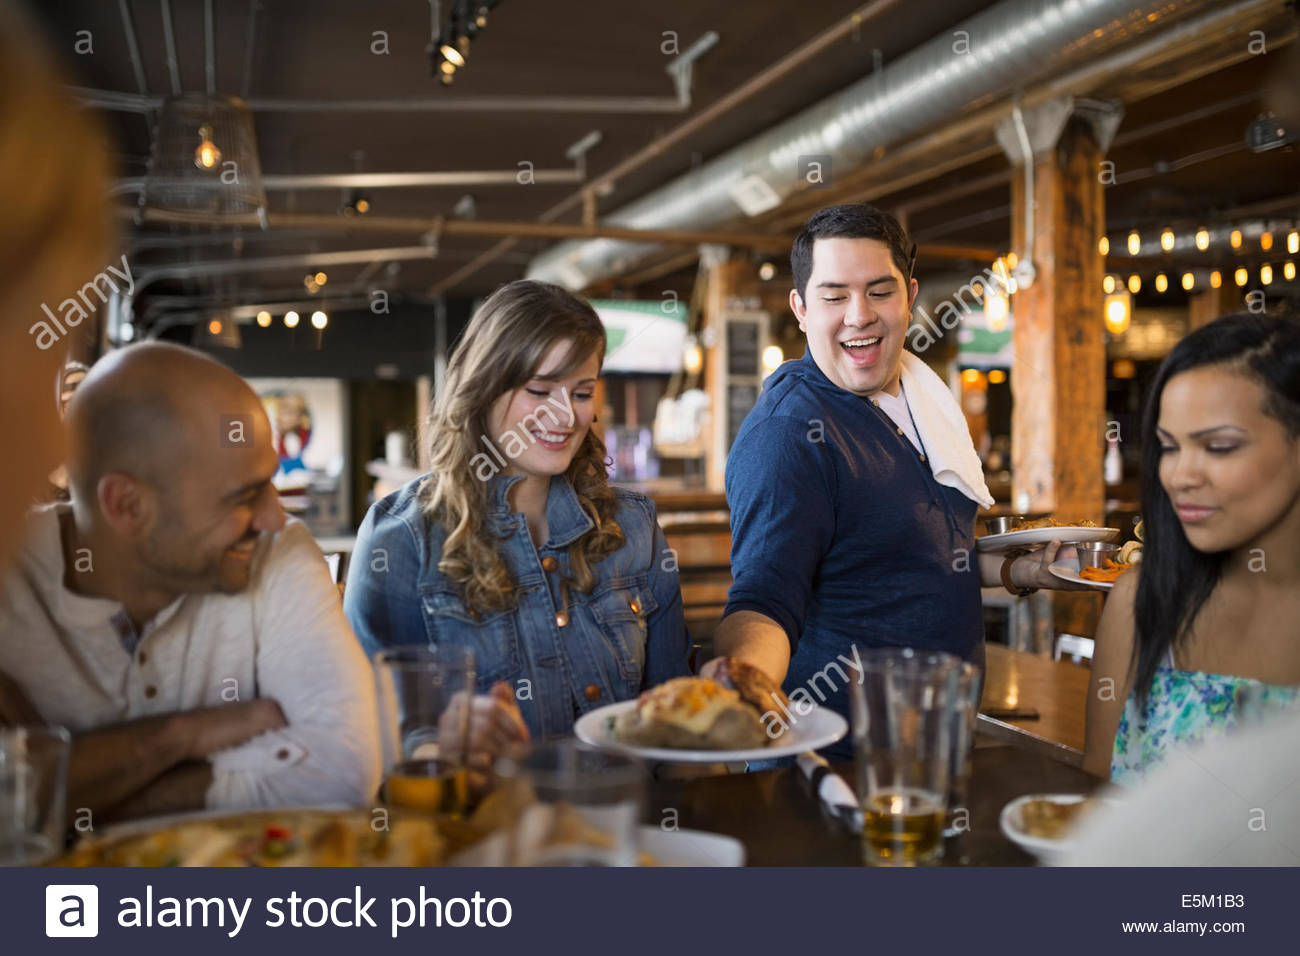 Waiter serving food to friends in pub - Stock Image